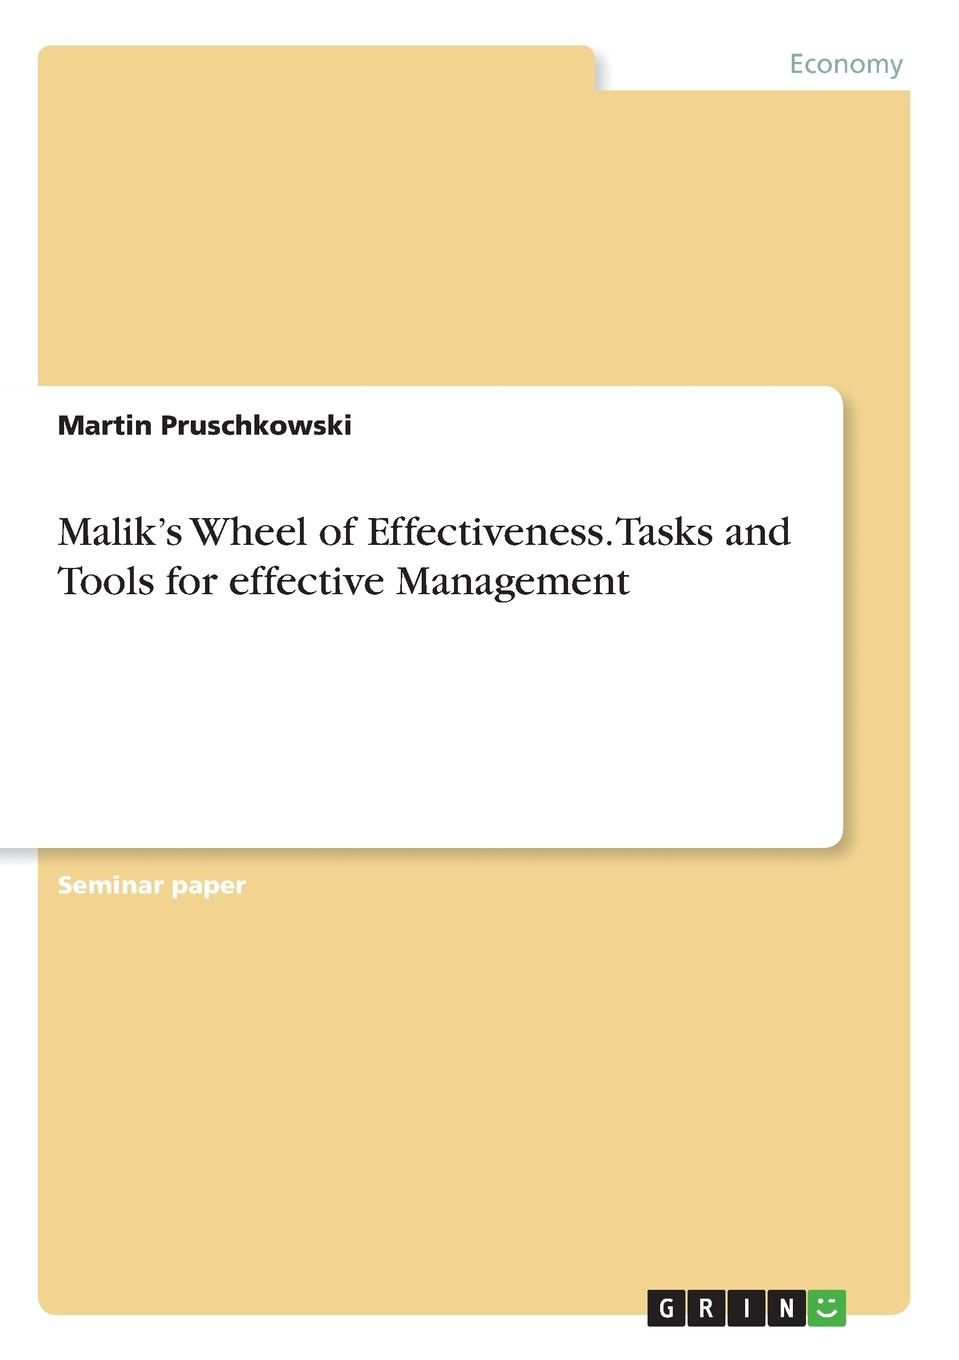 Martin Pruschkowski Malik.s Wheel of Effectiveness. Tasks and Tools for effective Management 2018 successful teacher workbook this half year edition notepad planner effective time management manual b5